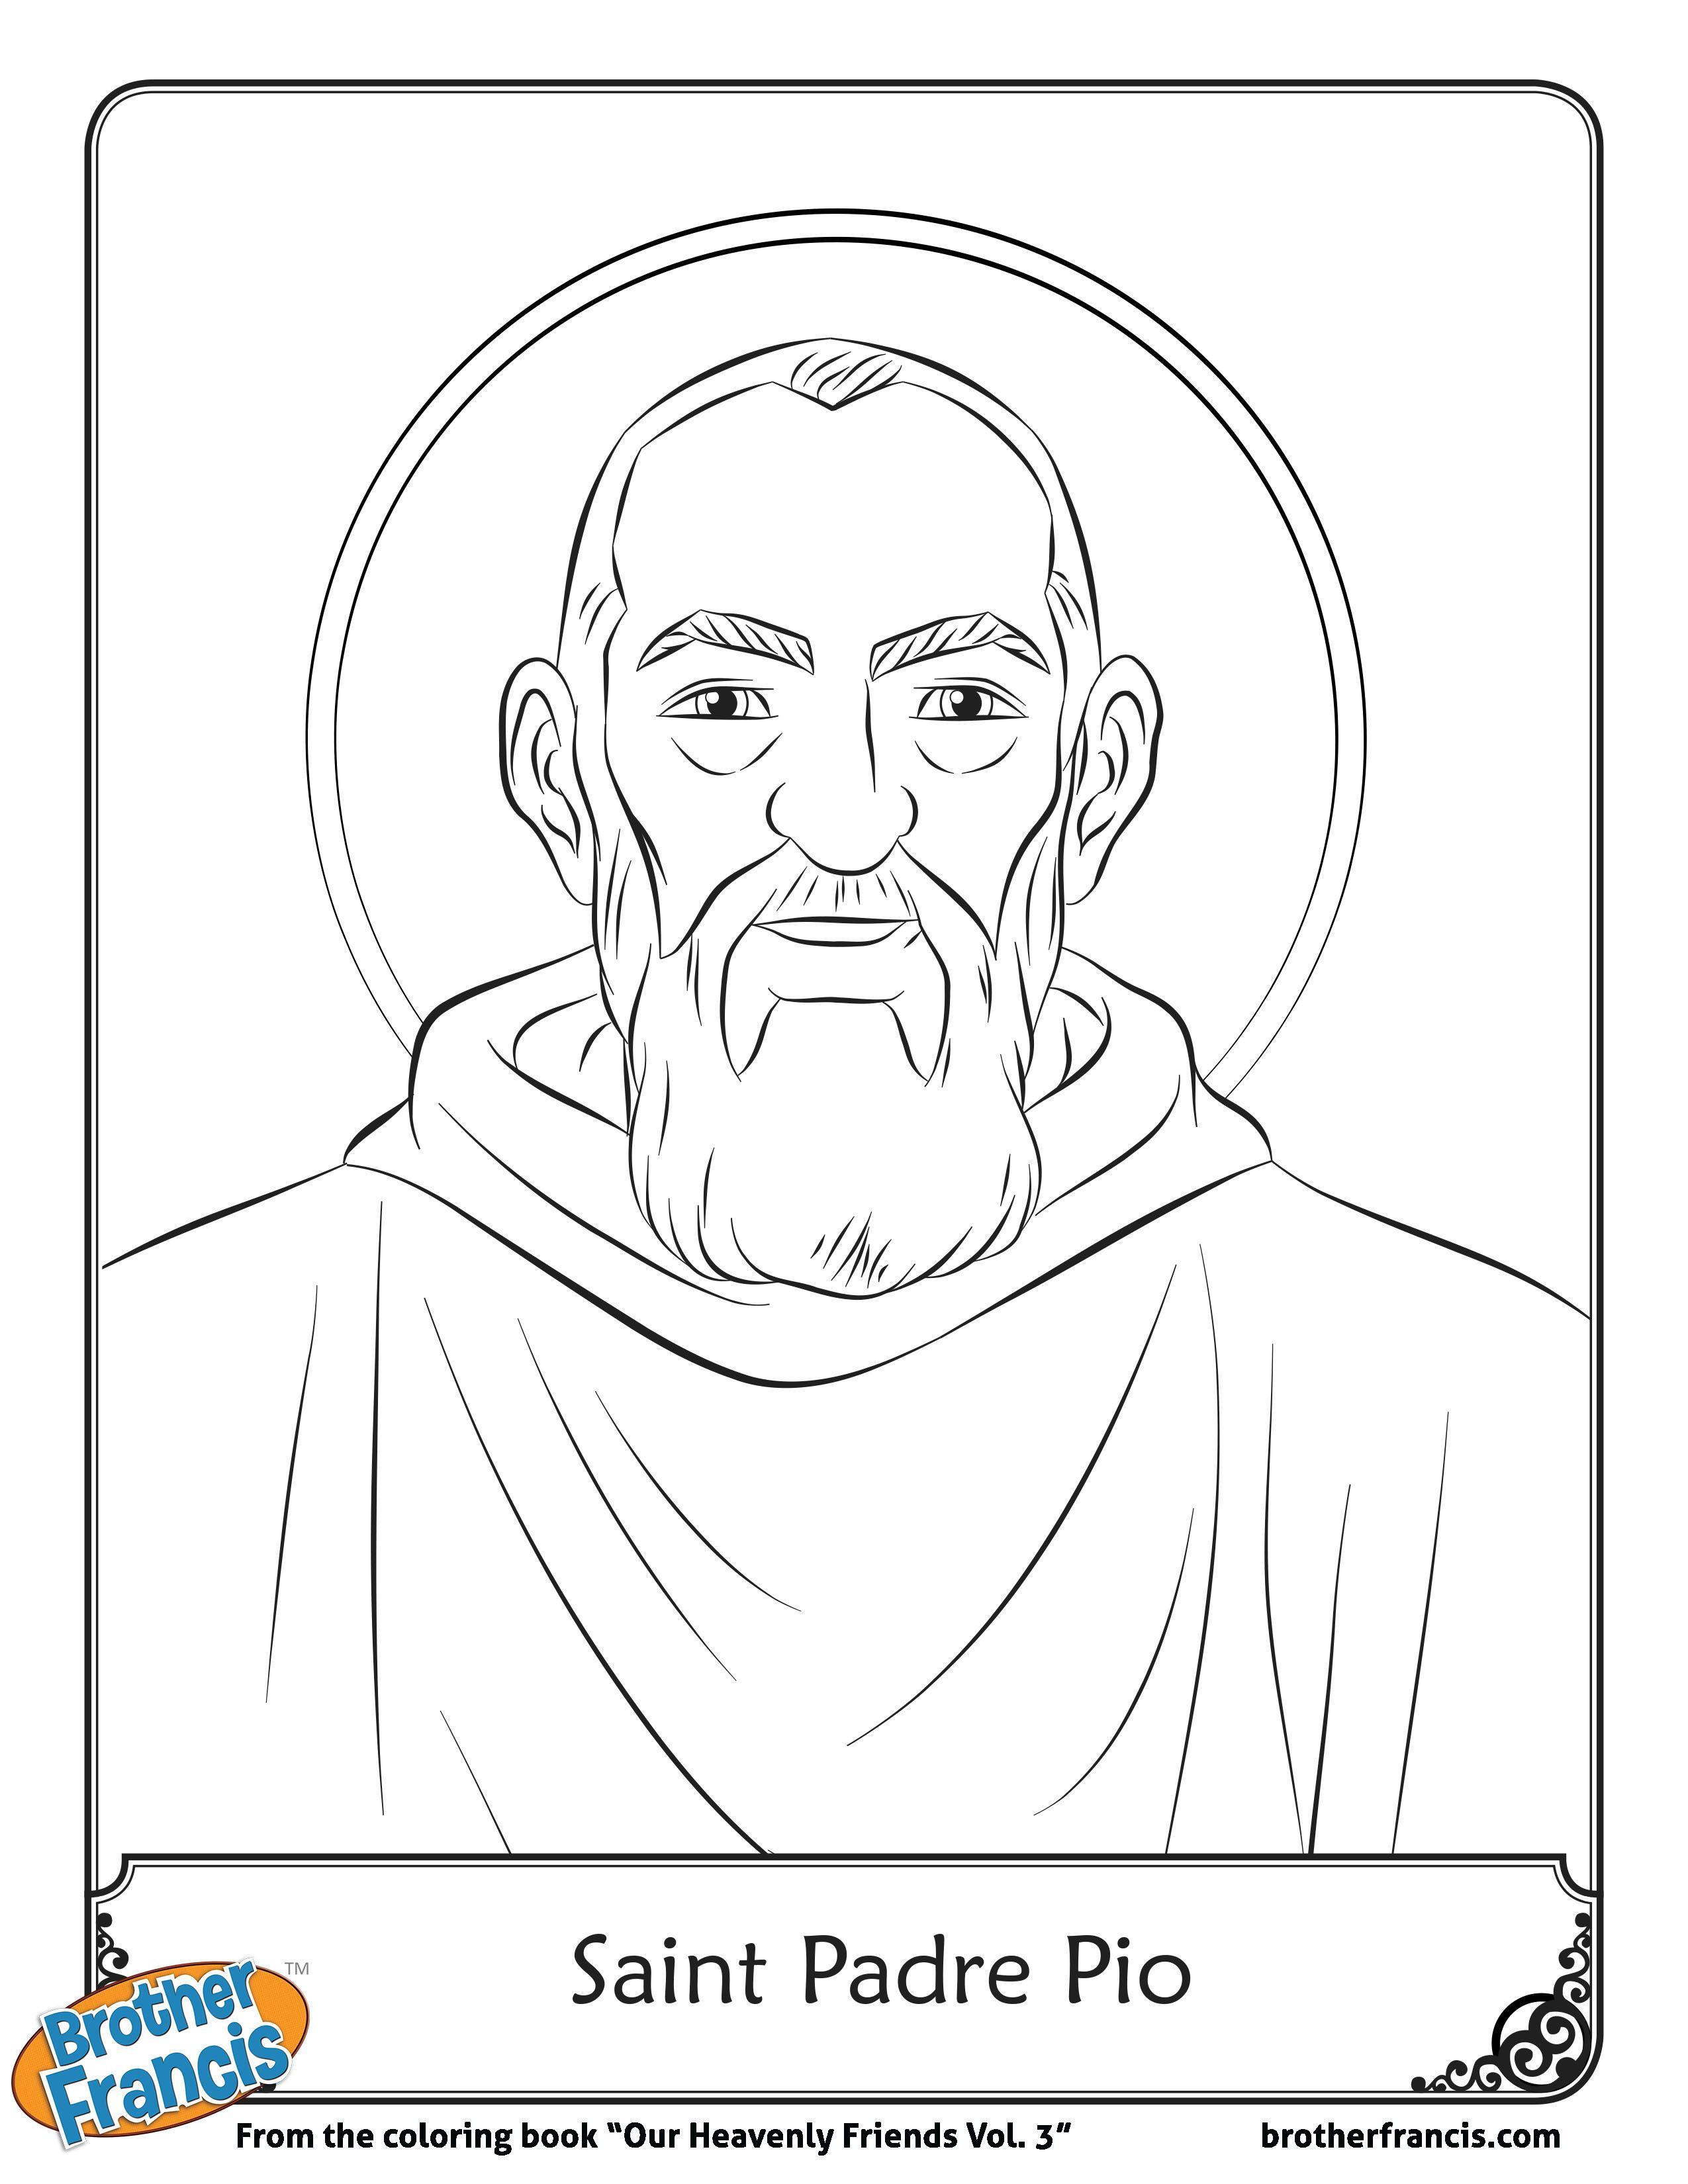 September 23_Saint-padre-pio-free-coloring-page-page-001